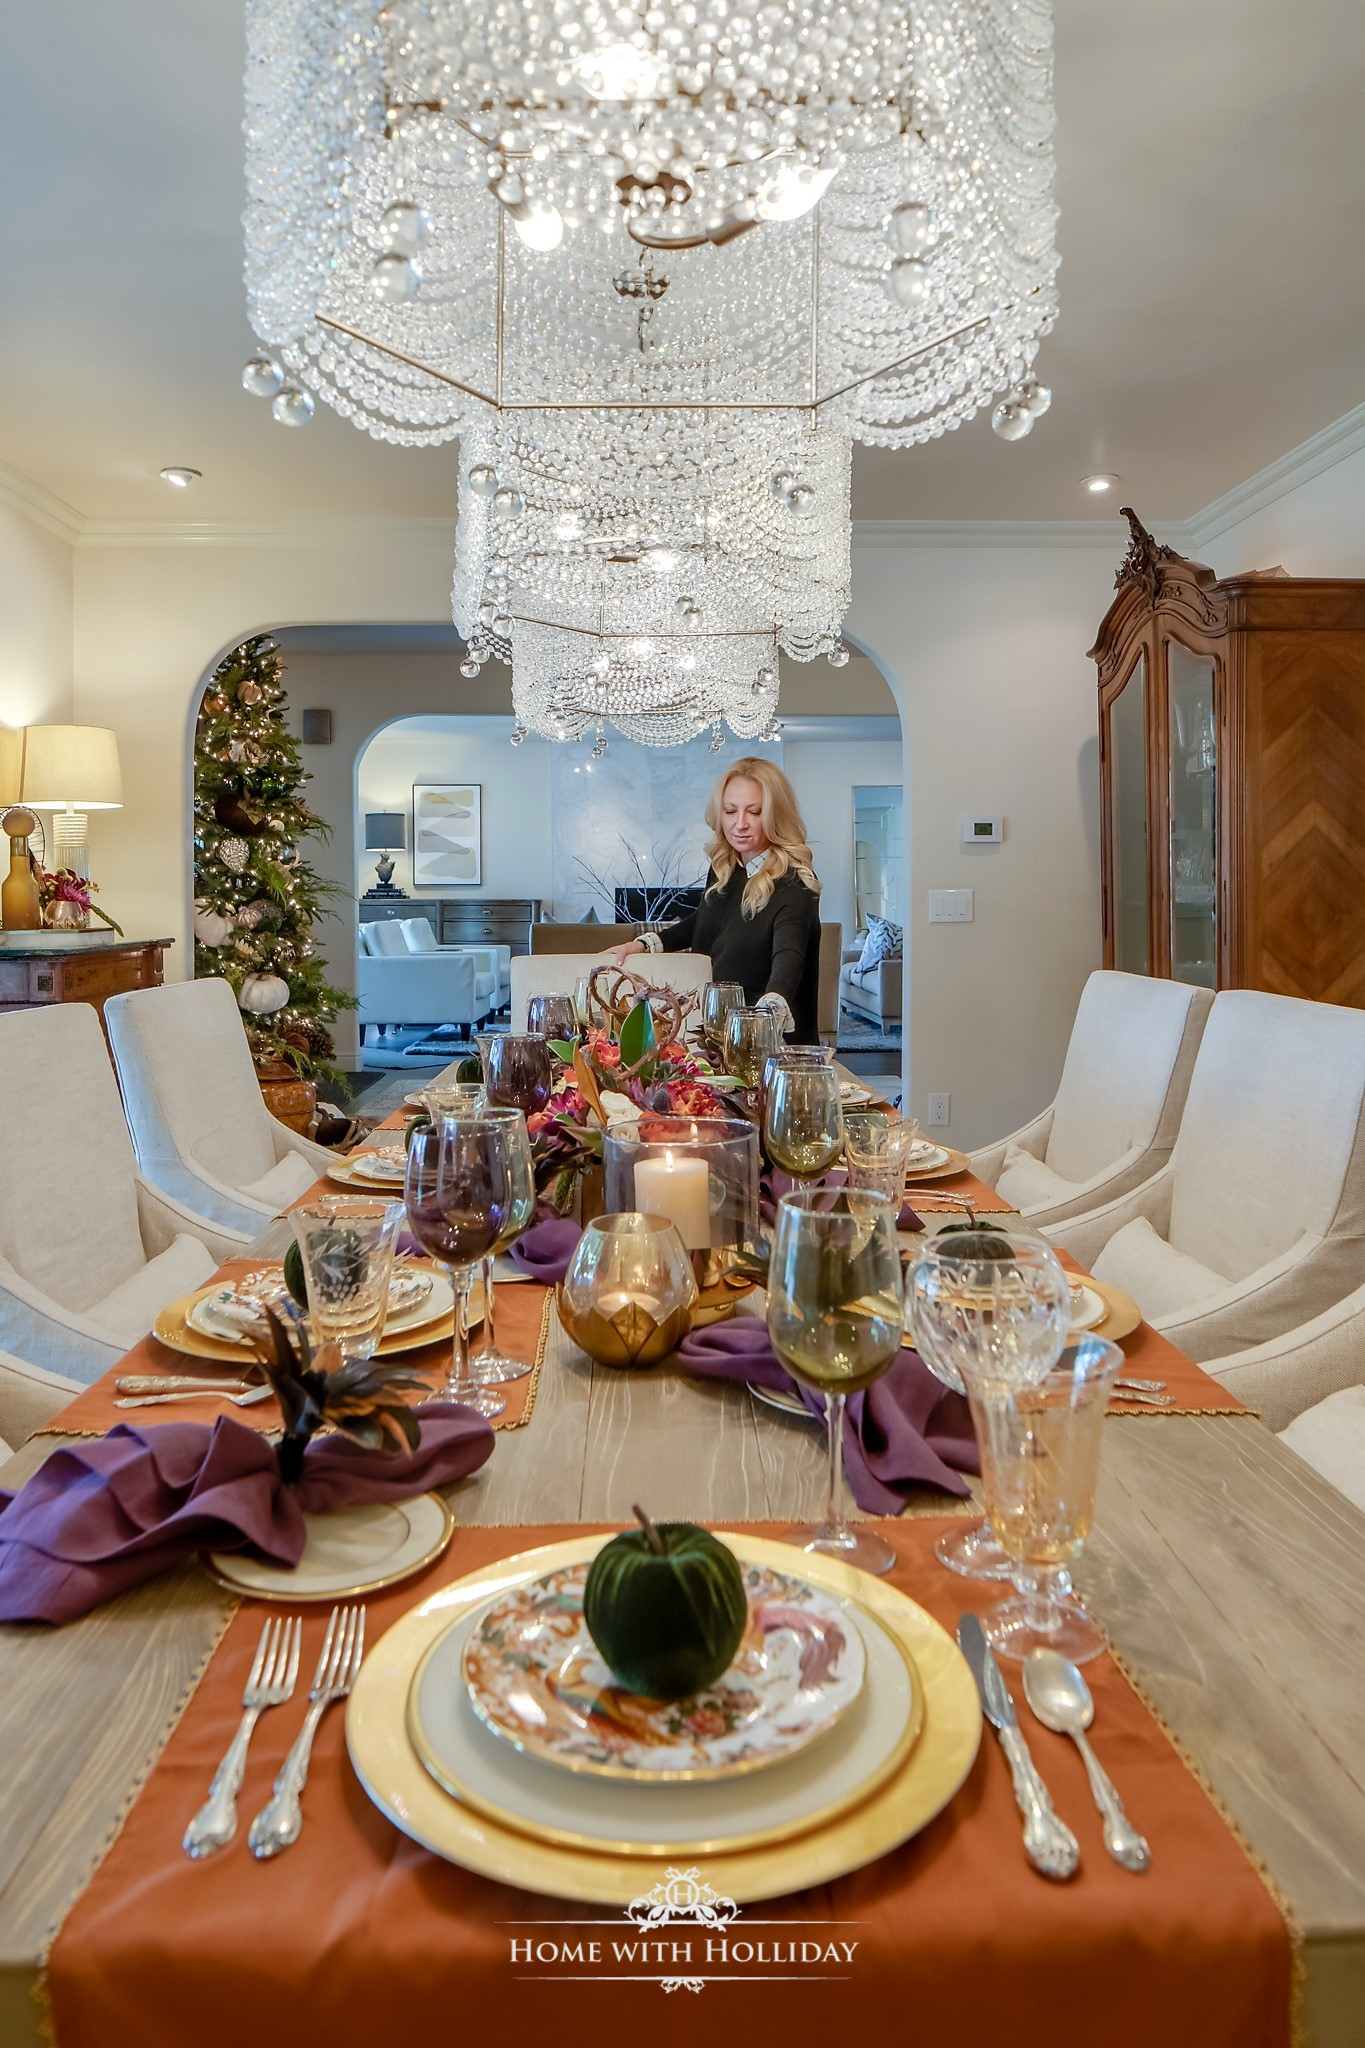 Holiday Hosting at Home - Creative Ideas and Recipes for Thanksgiving and Christmas - Home with Holliday